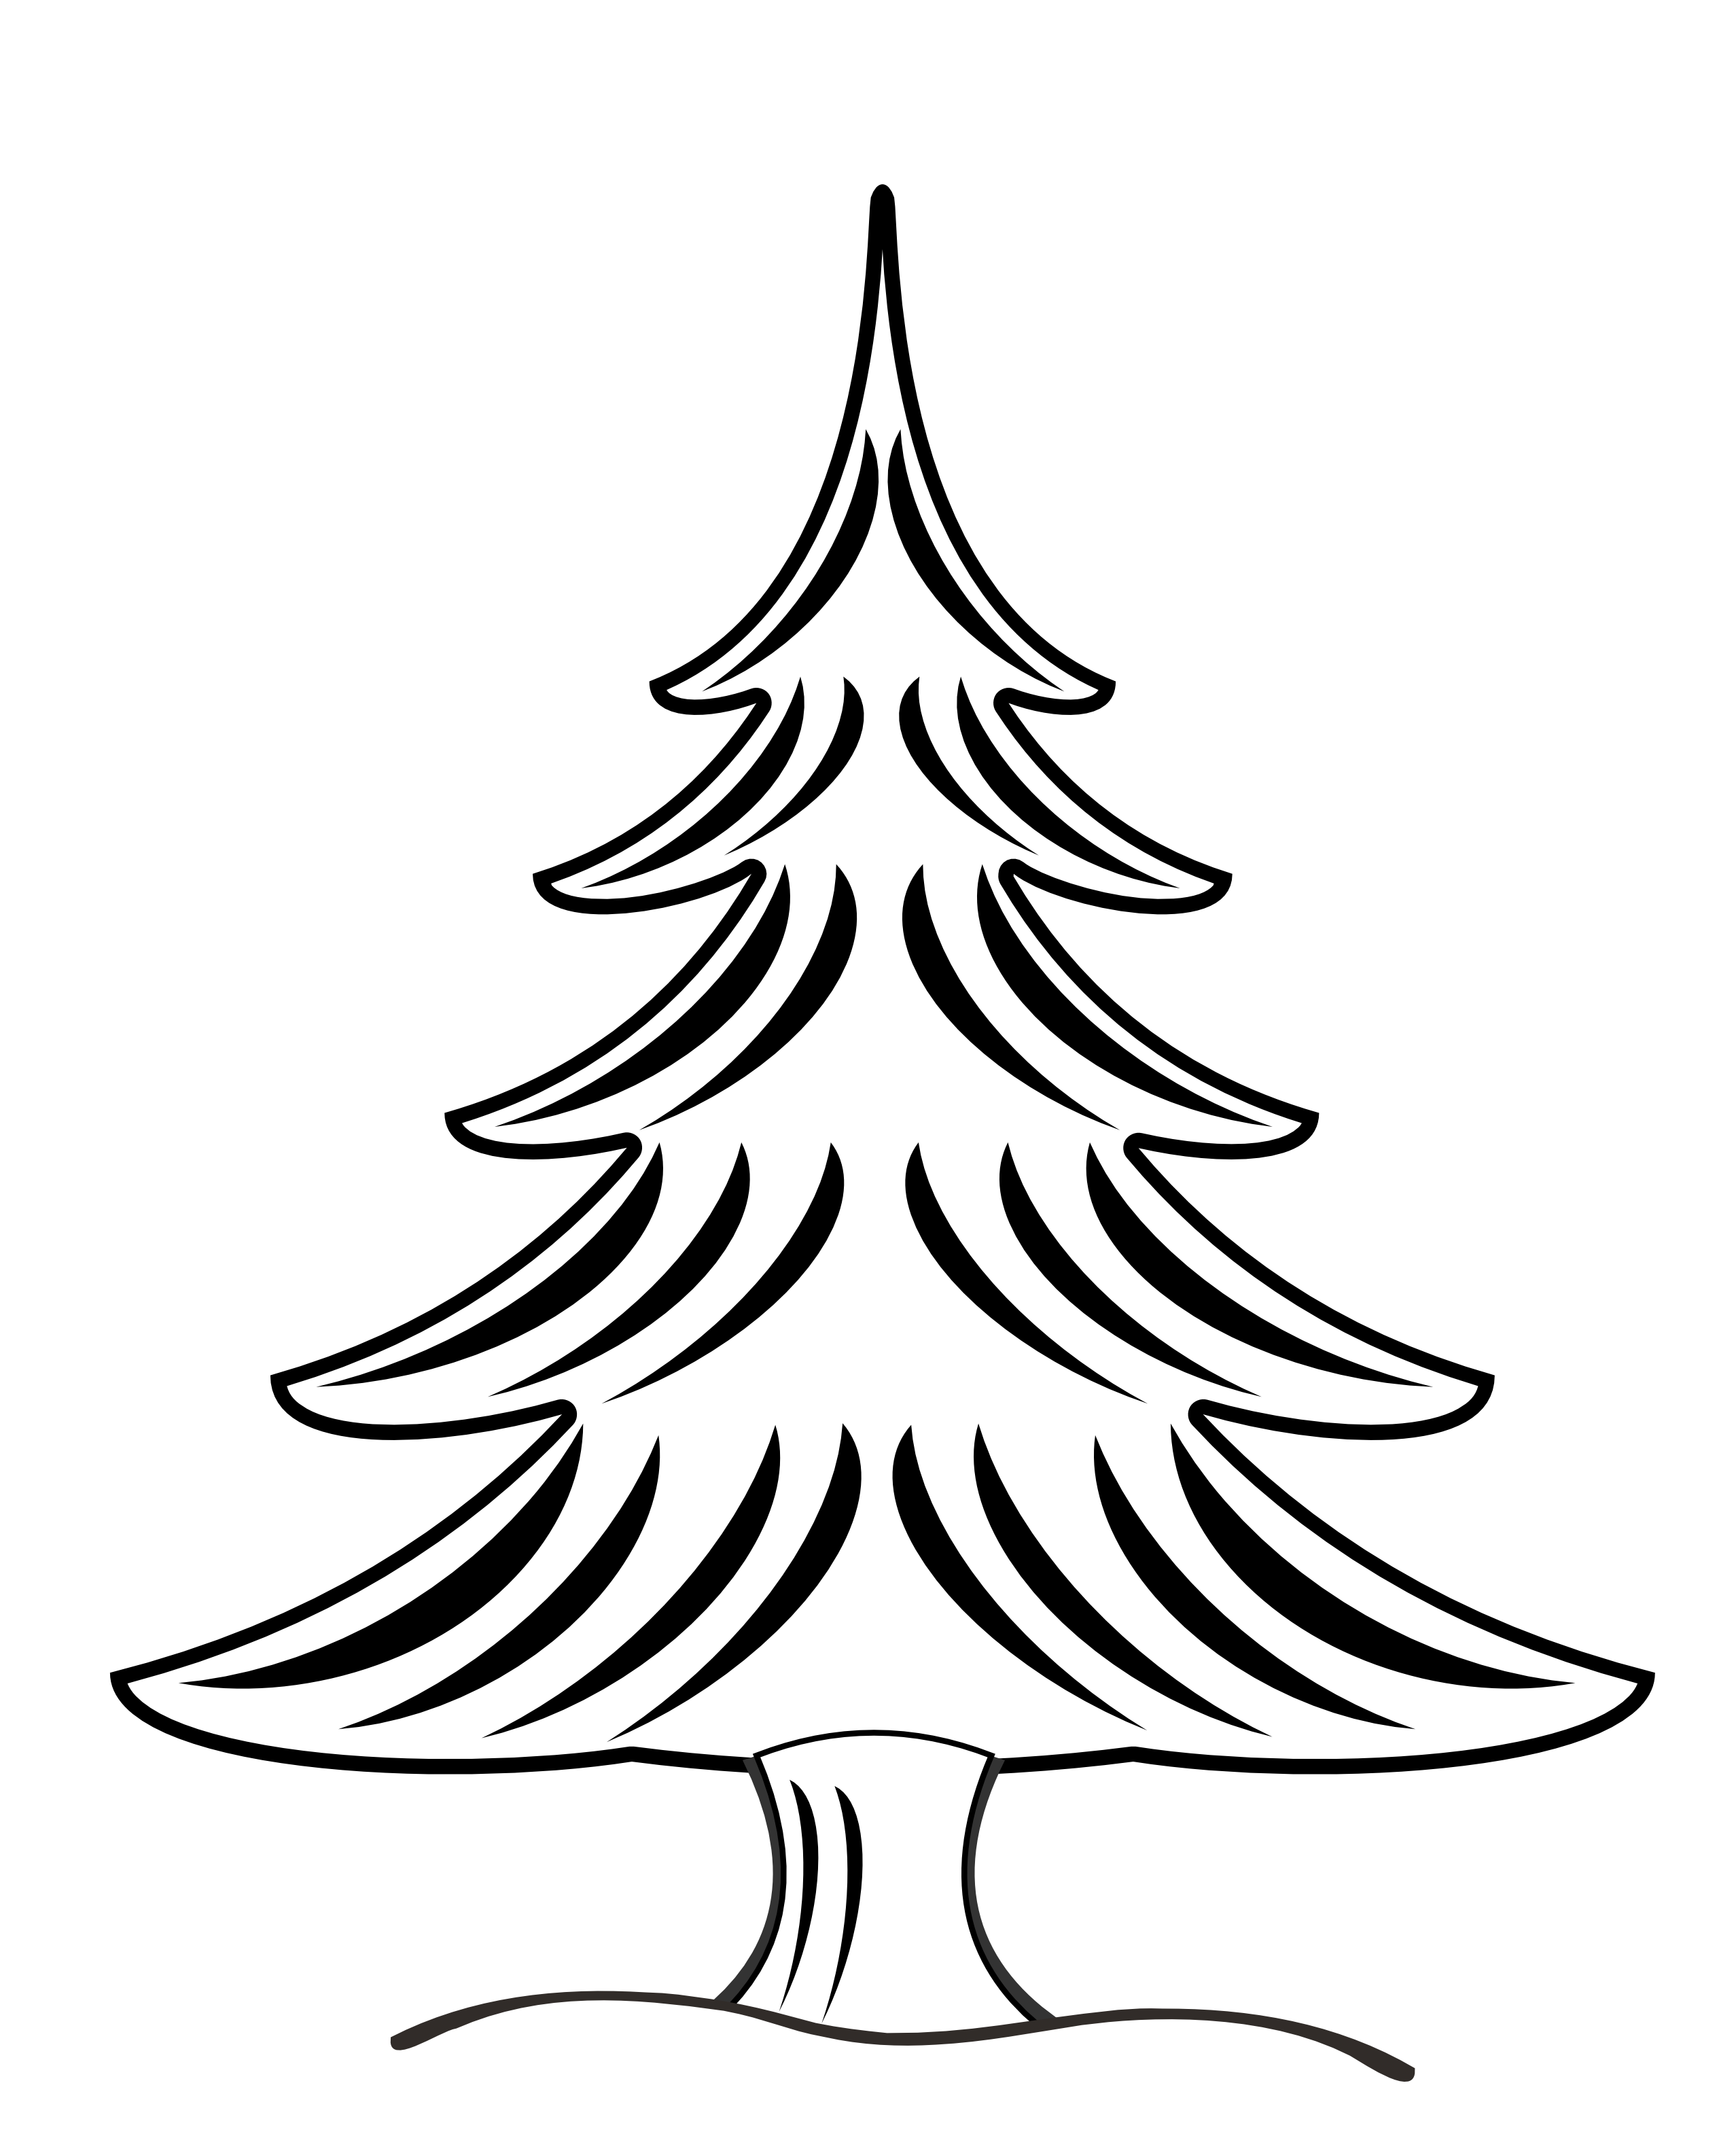 Free vector christmas clipart in black and white svg freeuse library Free Christmas Pictures Black And White, Download Free Clip Art ... svg freeuse library